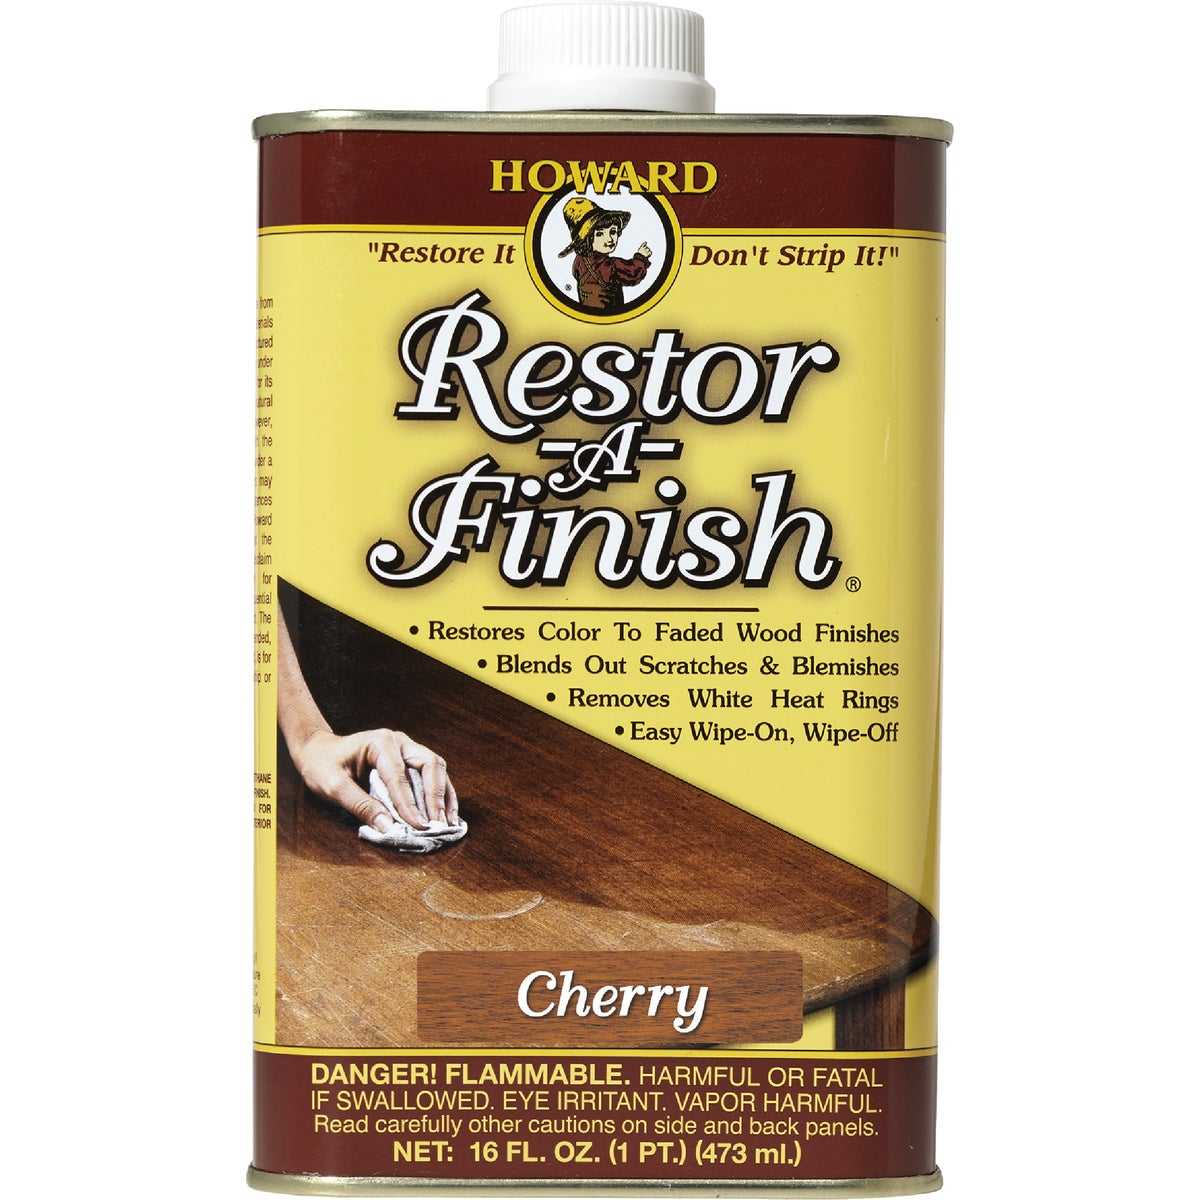 CHERRY RESTOR-A-FINISH - RF9016 by Howard Products